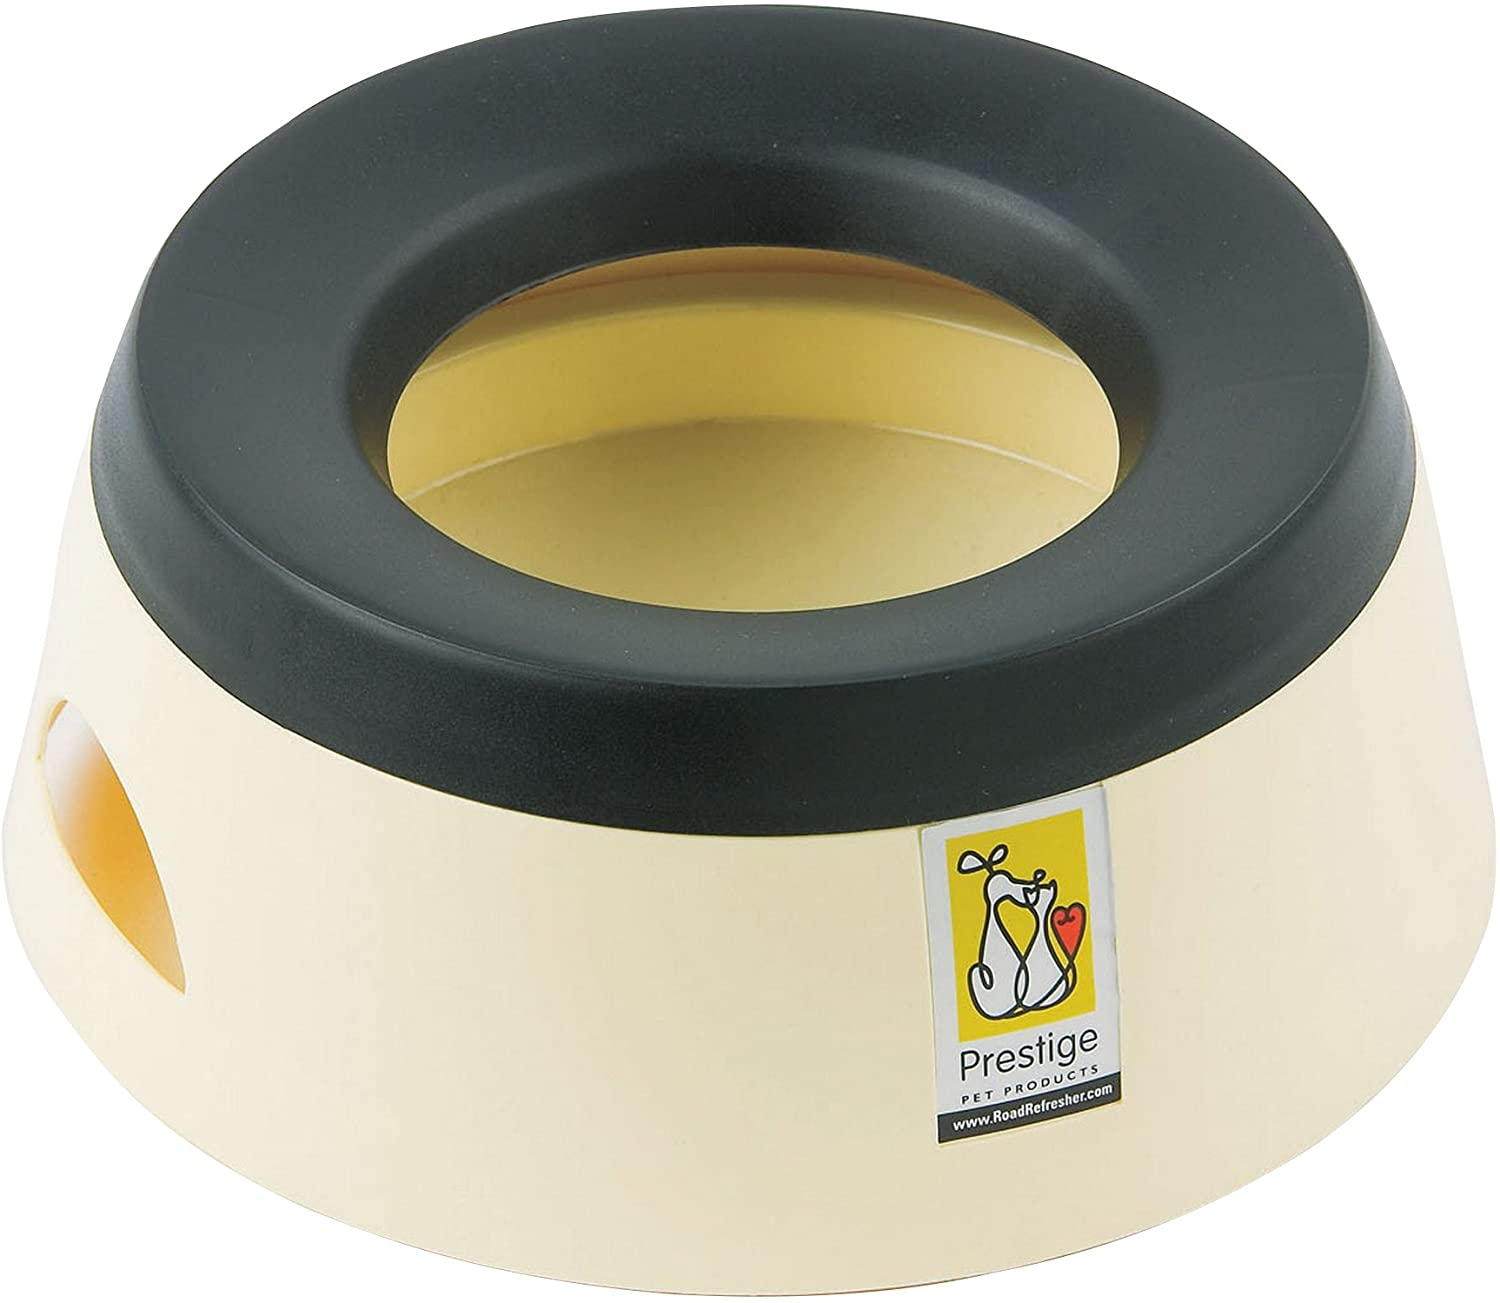 (Road Refresher) Non-Spill Travel Water Bowl Small (Cream)